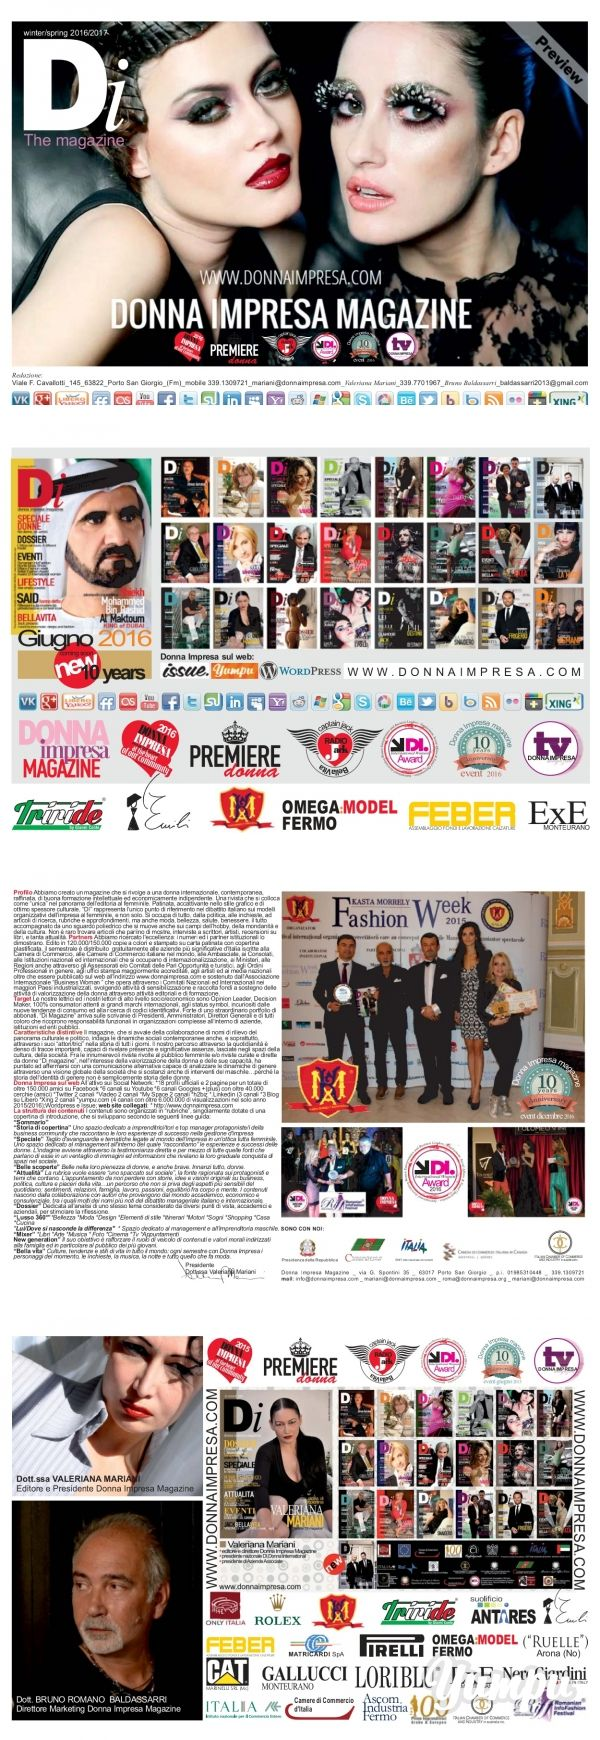 DONNA IMPRESA MAGAZINE 2016 - 2017. - Magazine with 18 pages: